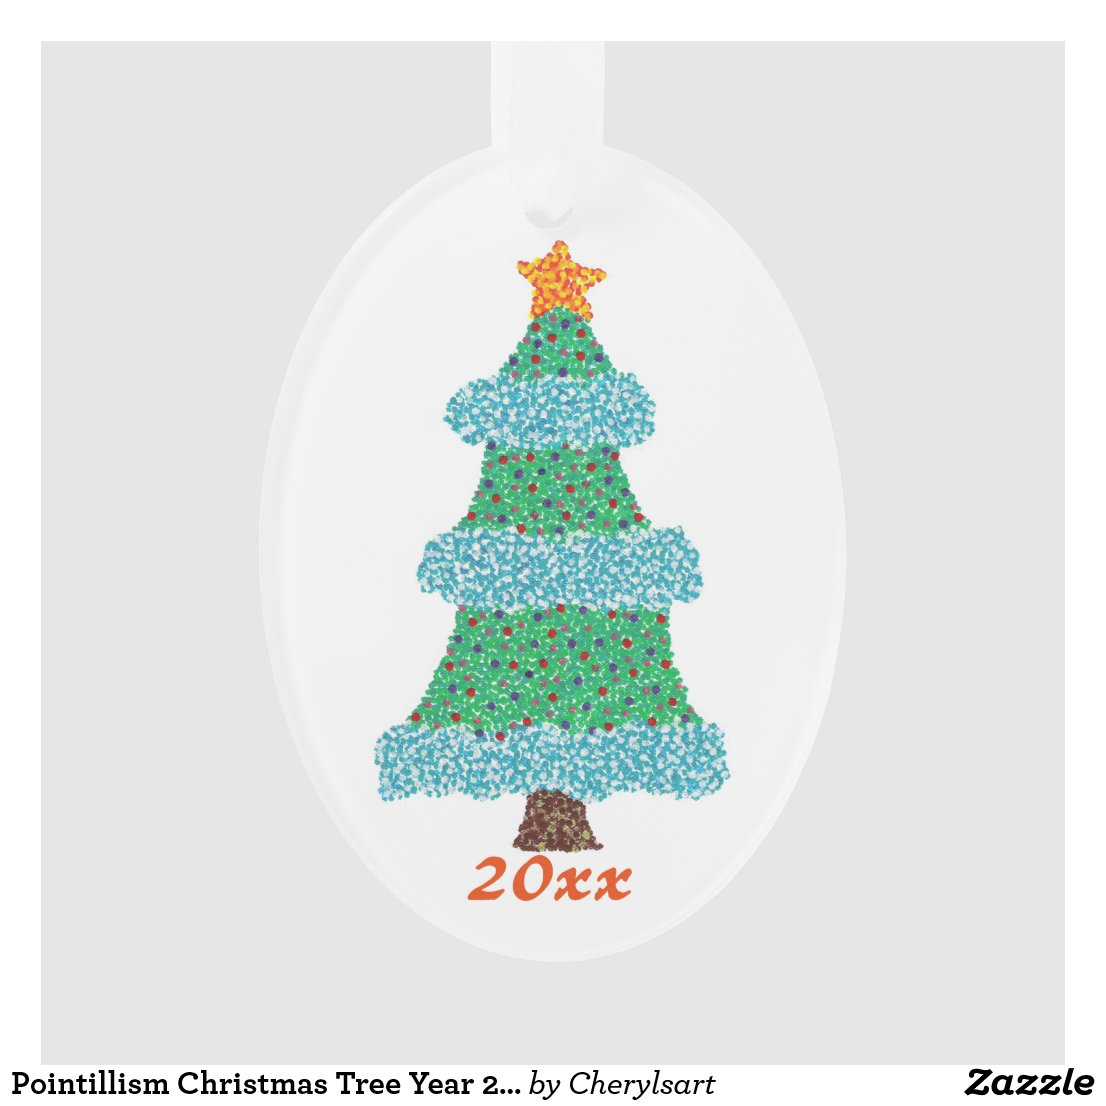 Pointillism Christmas Tree Year 20xx Ornaments